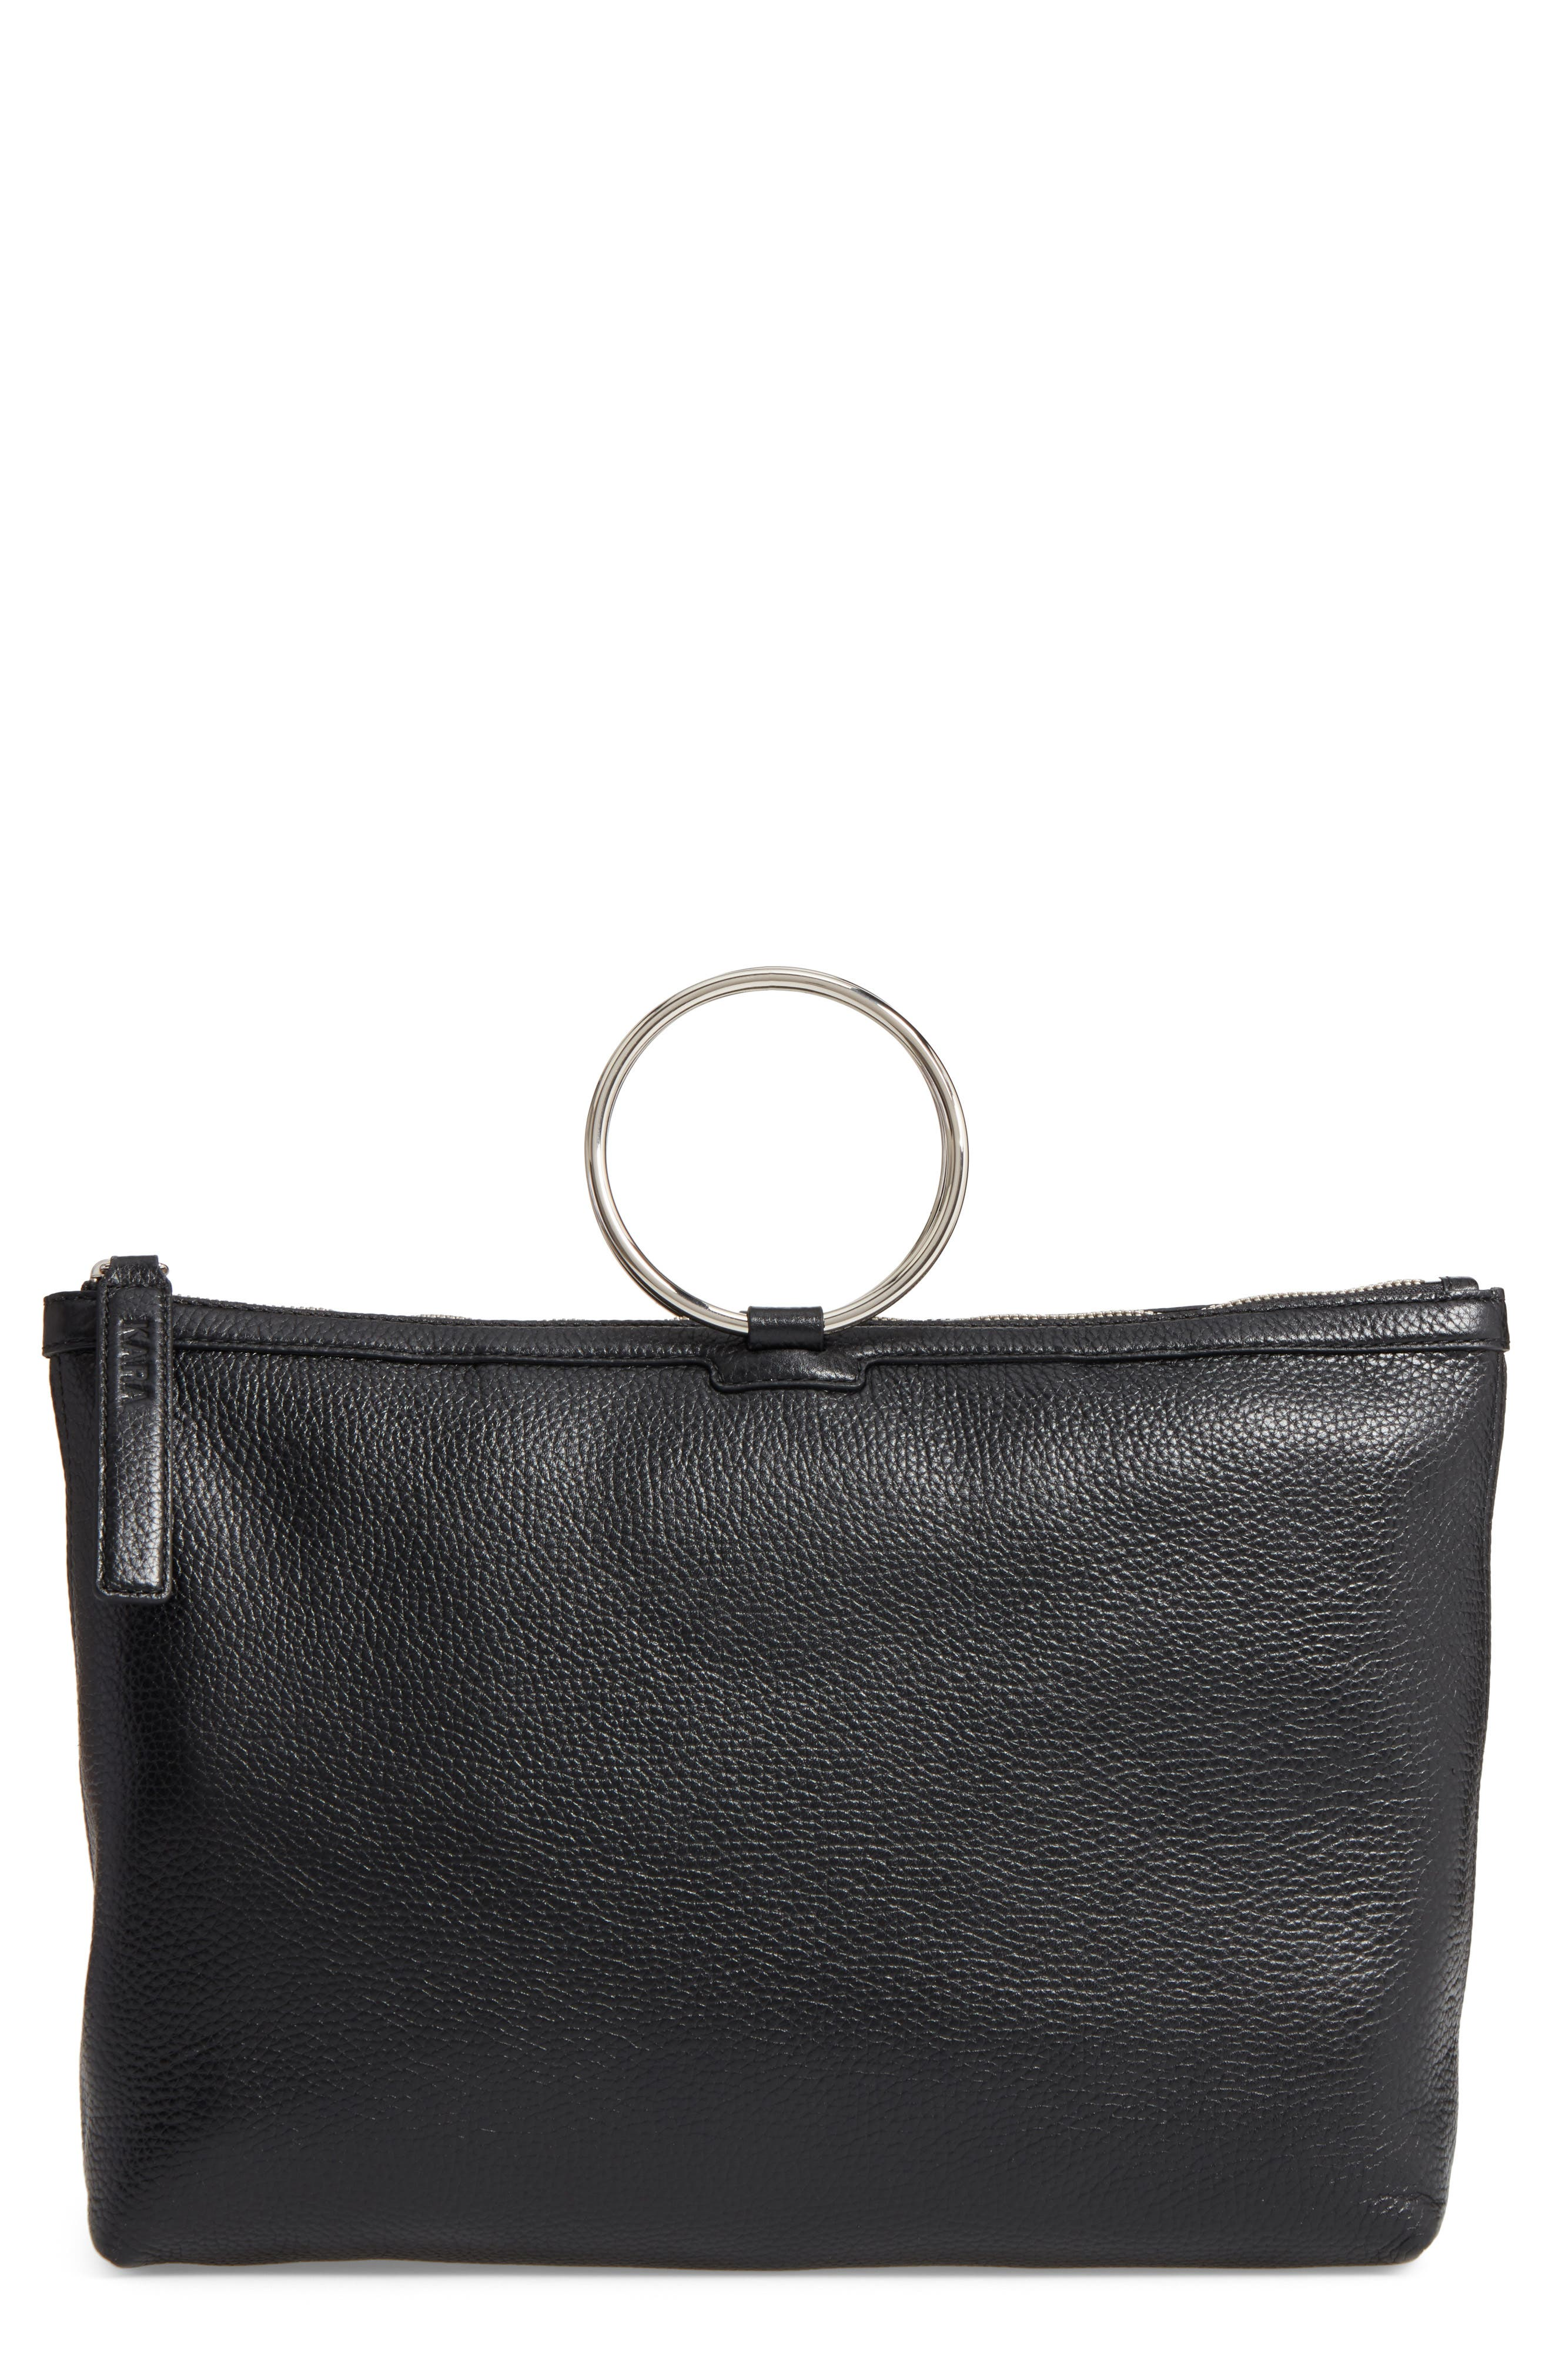 KARA Large Pebbled Leather Ring Clutch